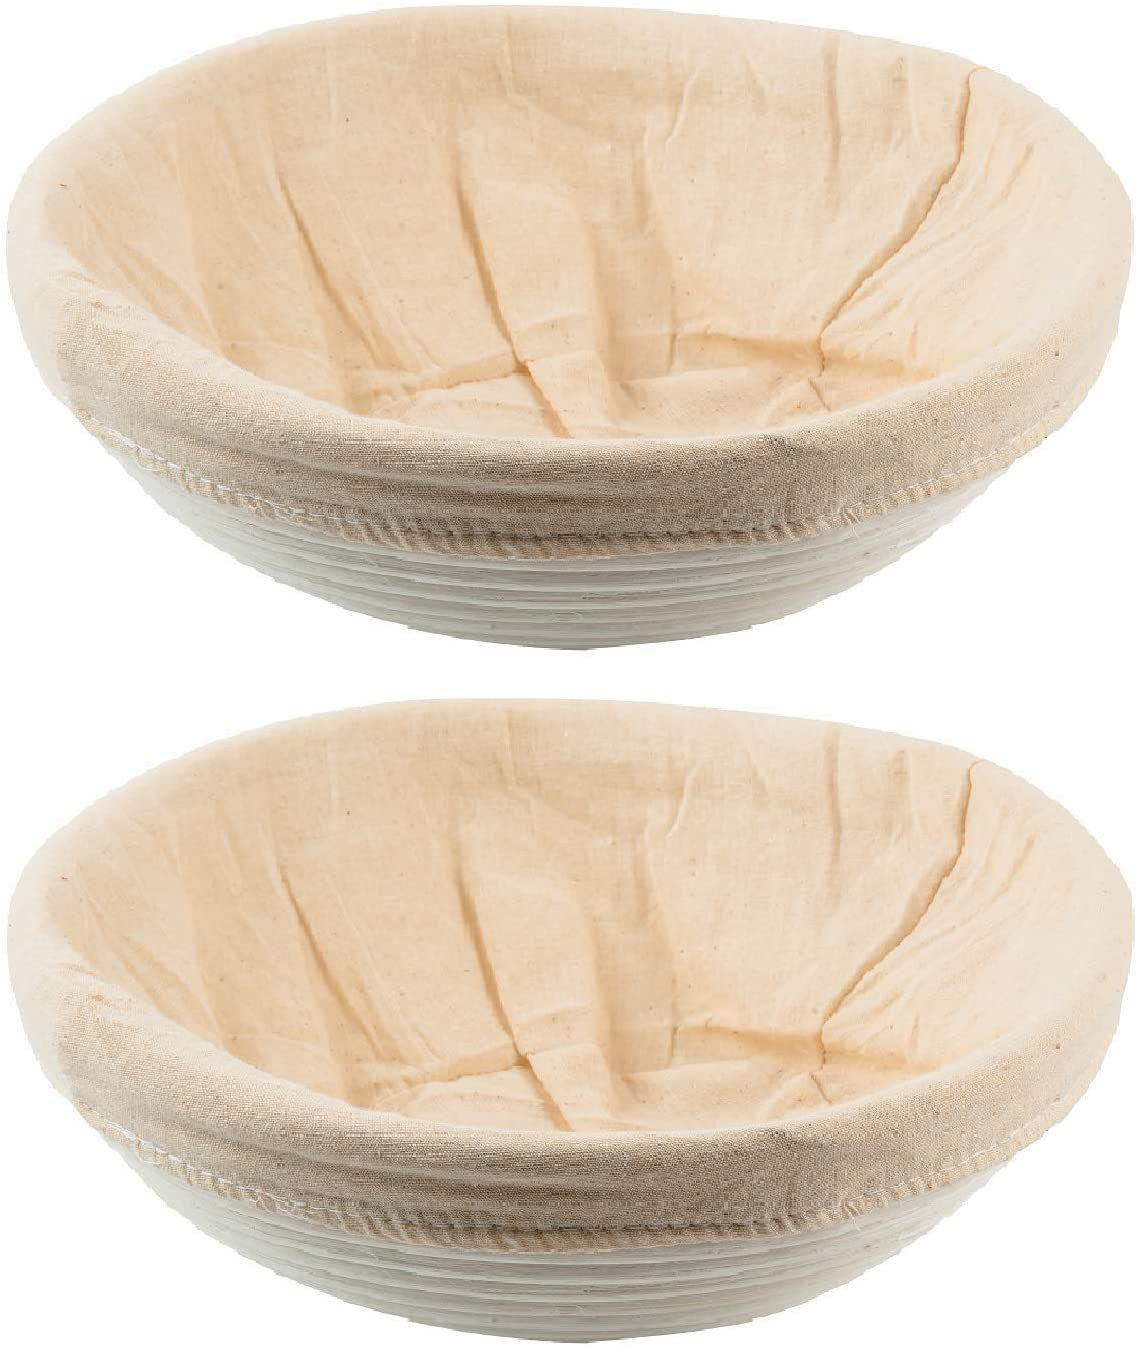 SUGUS HOUSE Set of 2 Round 9.8-Inch Bannetons